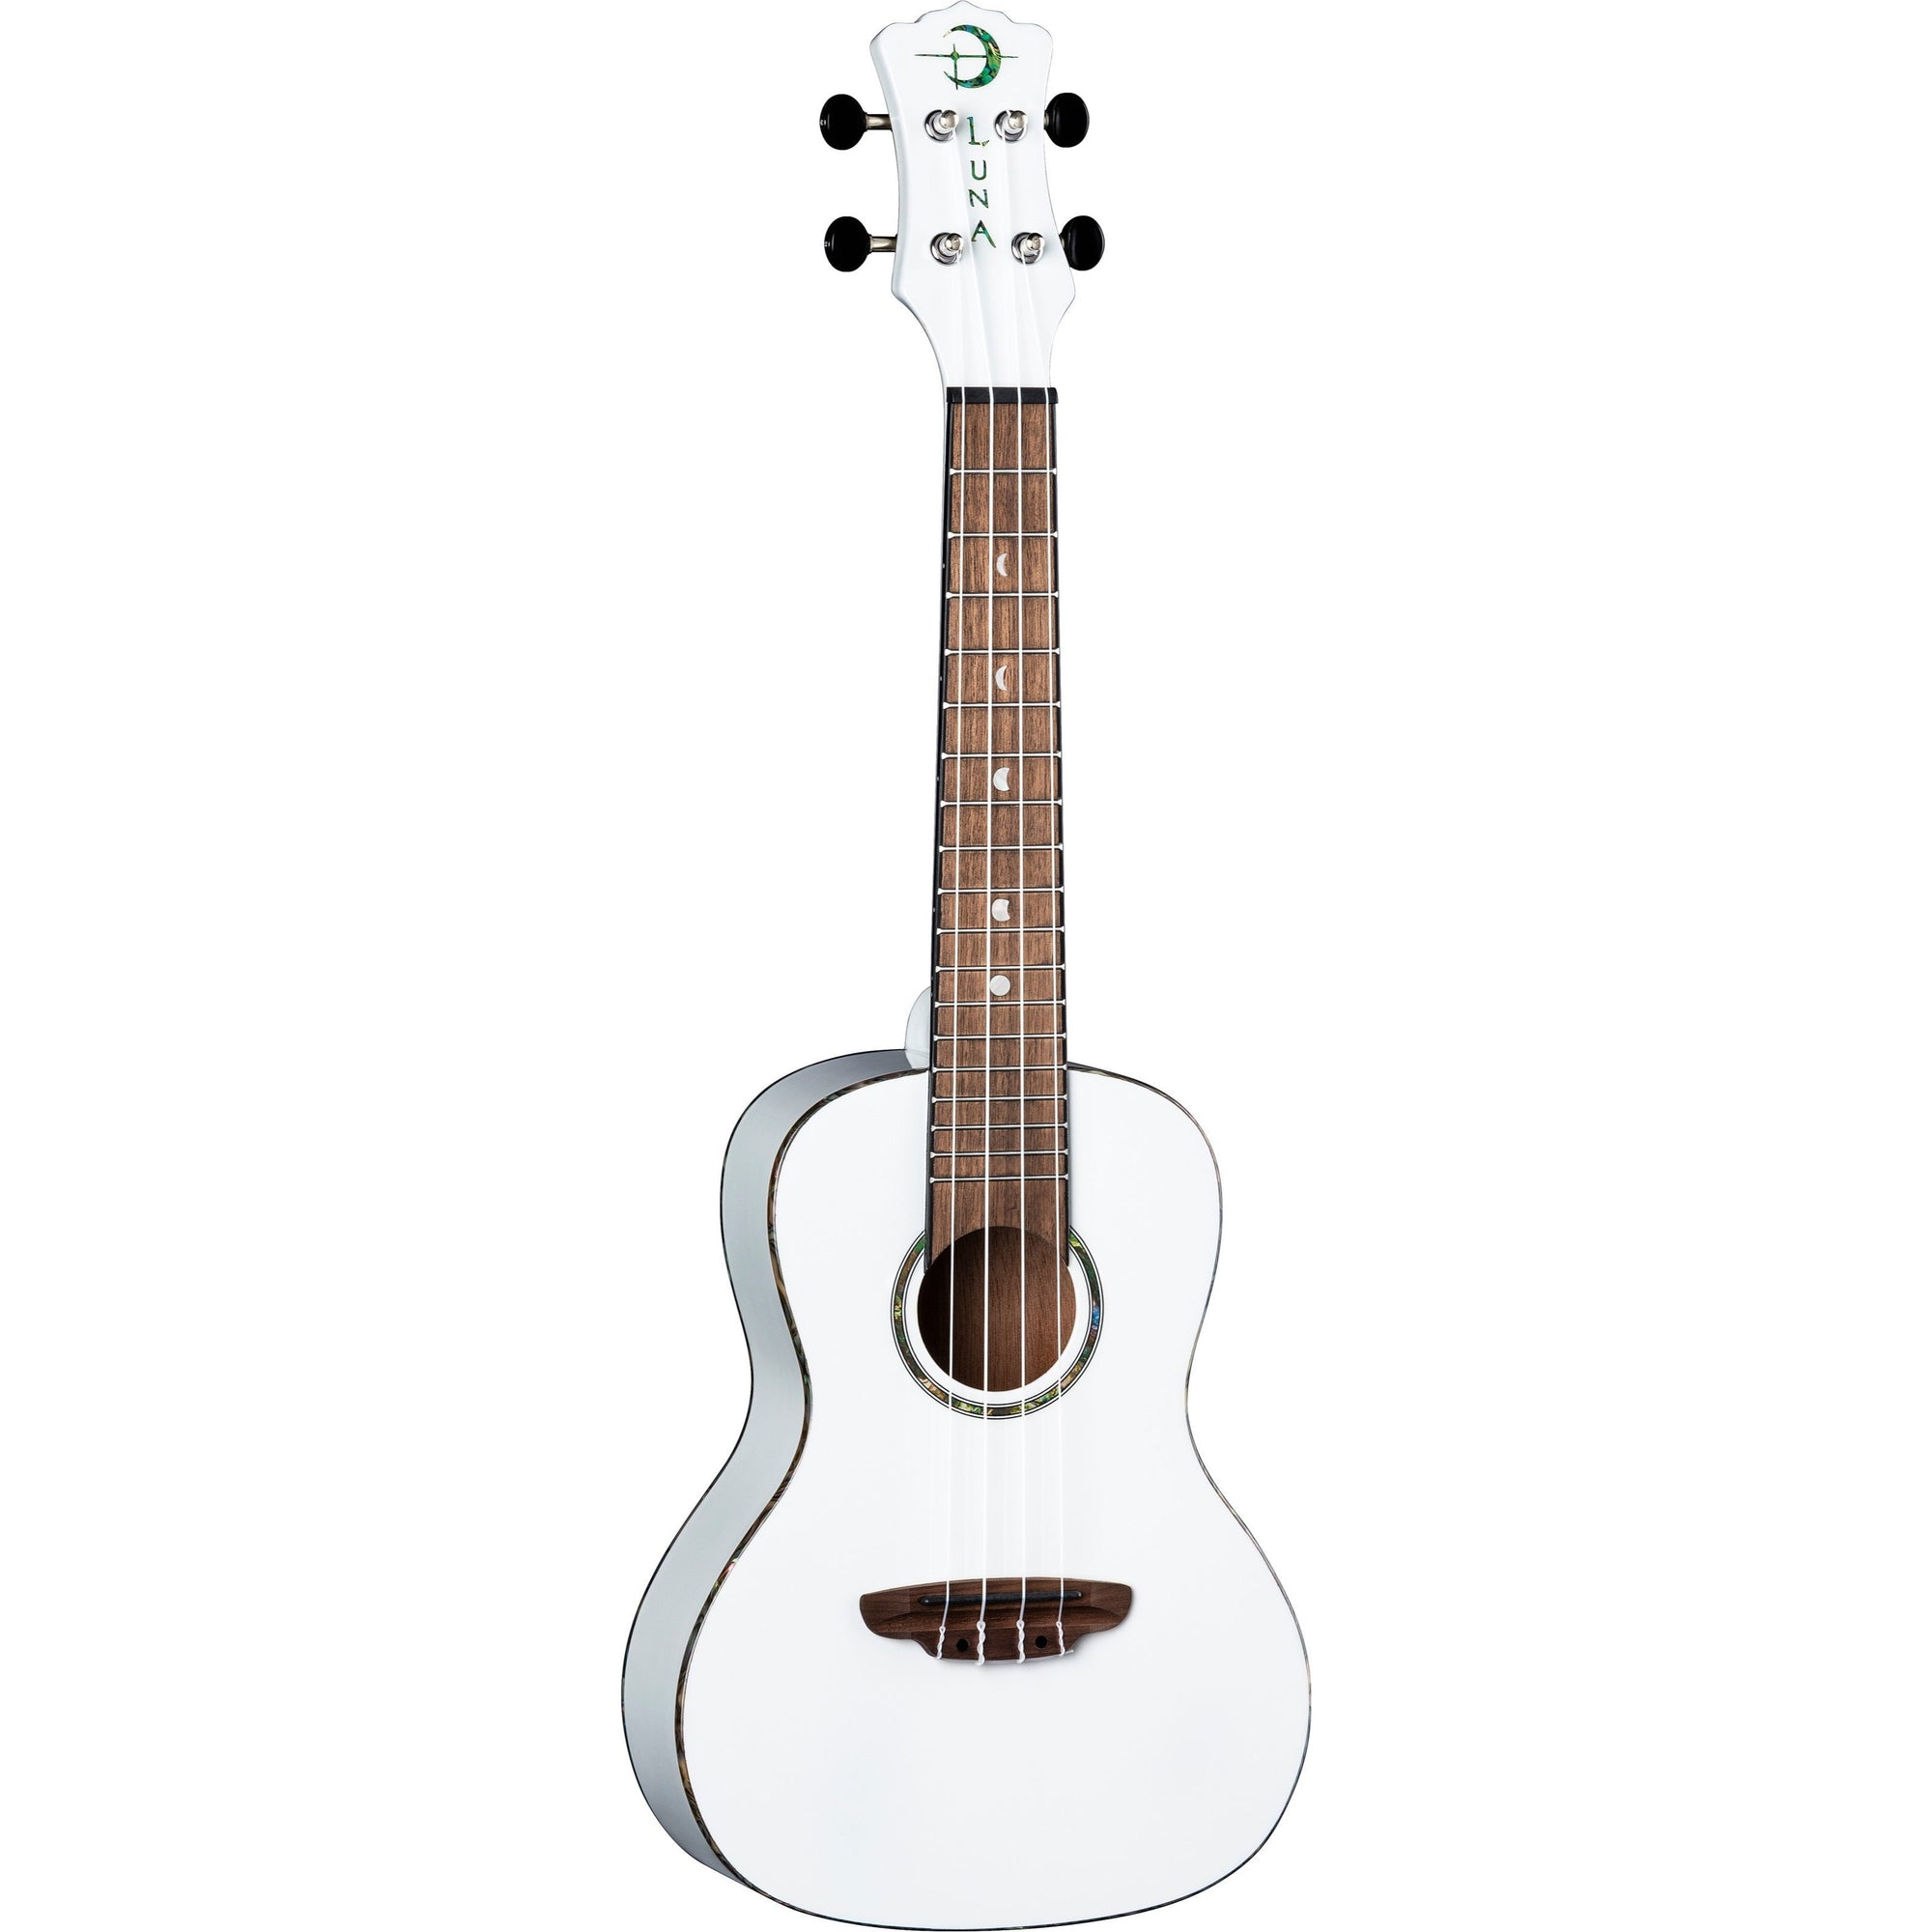 Luna Hau Snow Concert Ukulele (with Gig Bag)